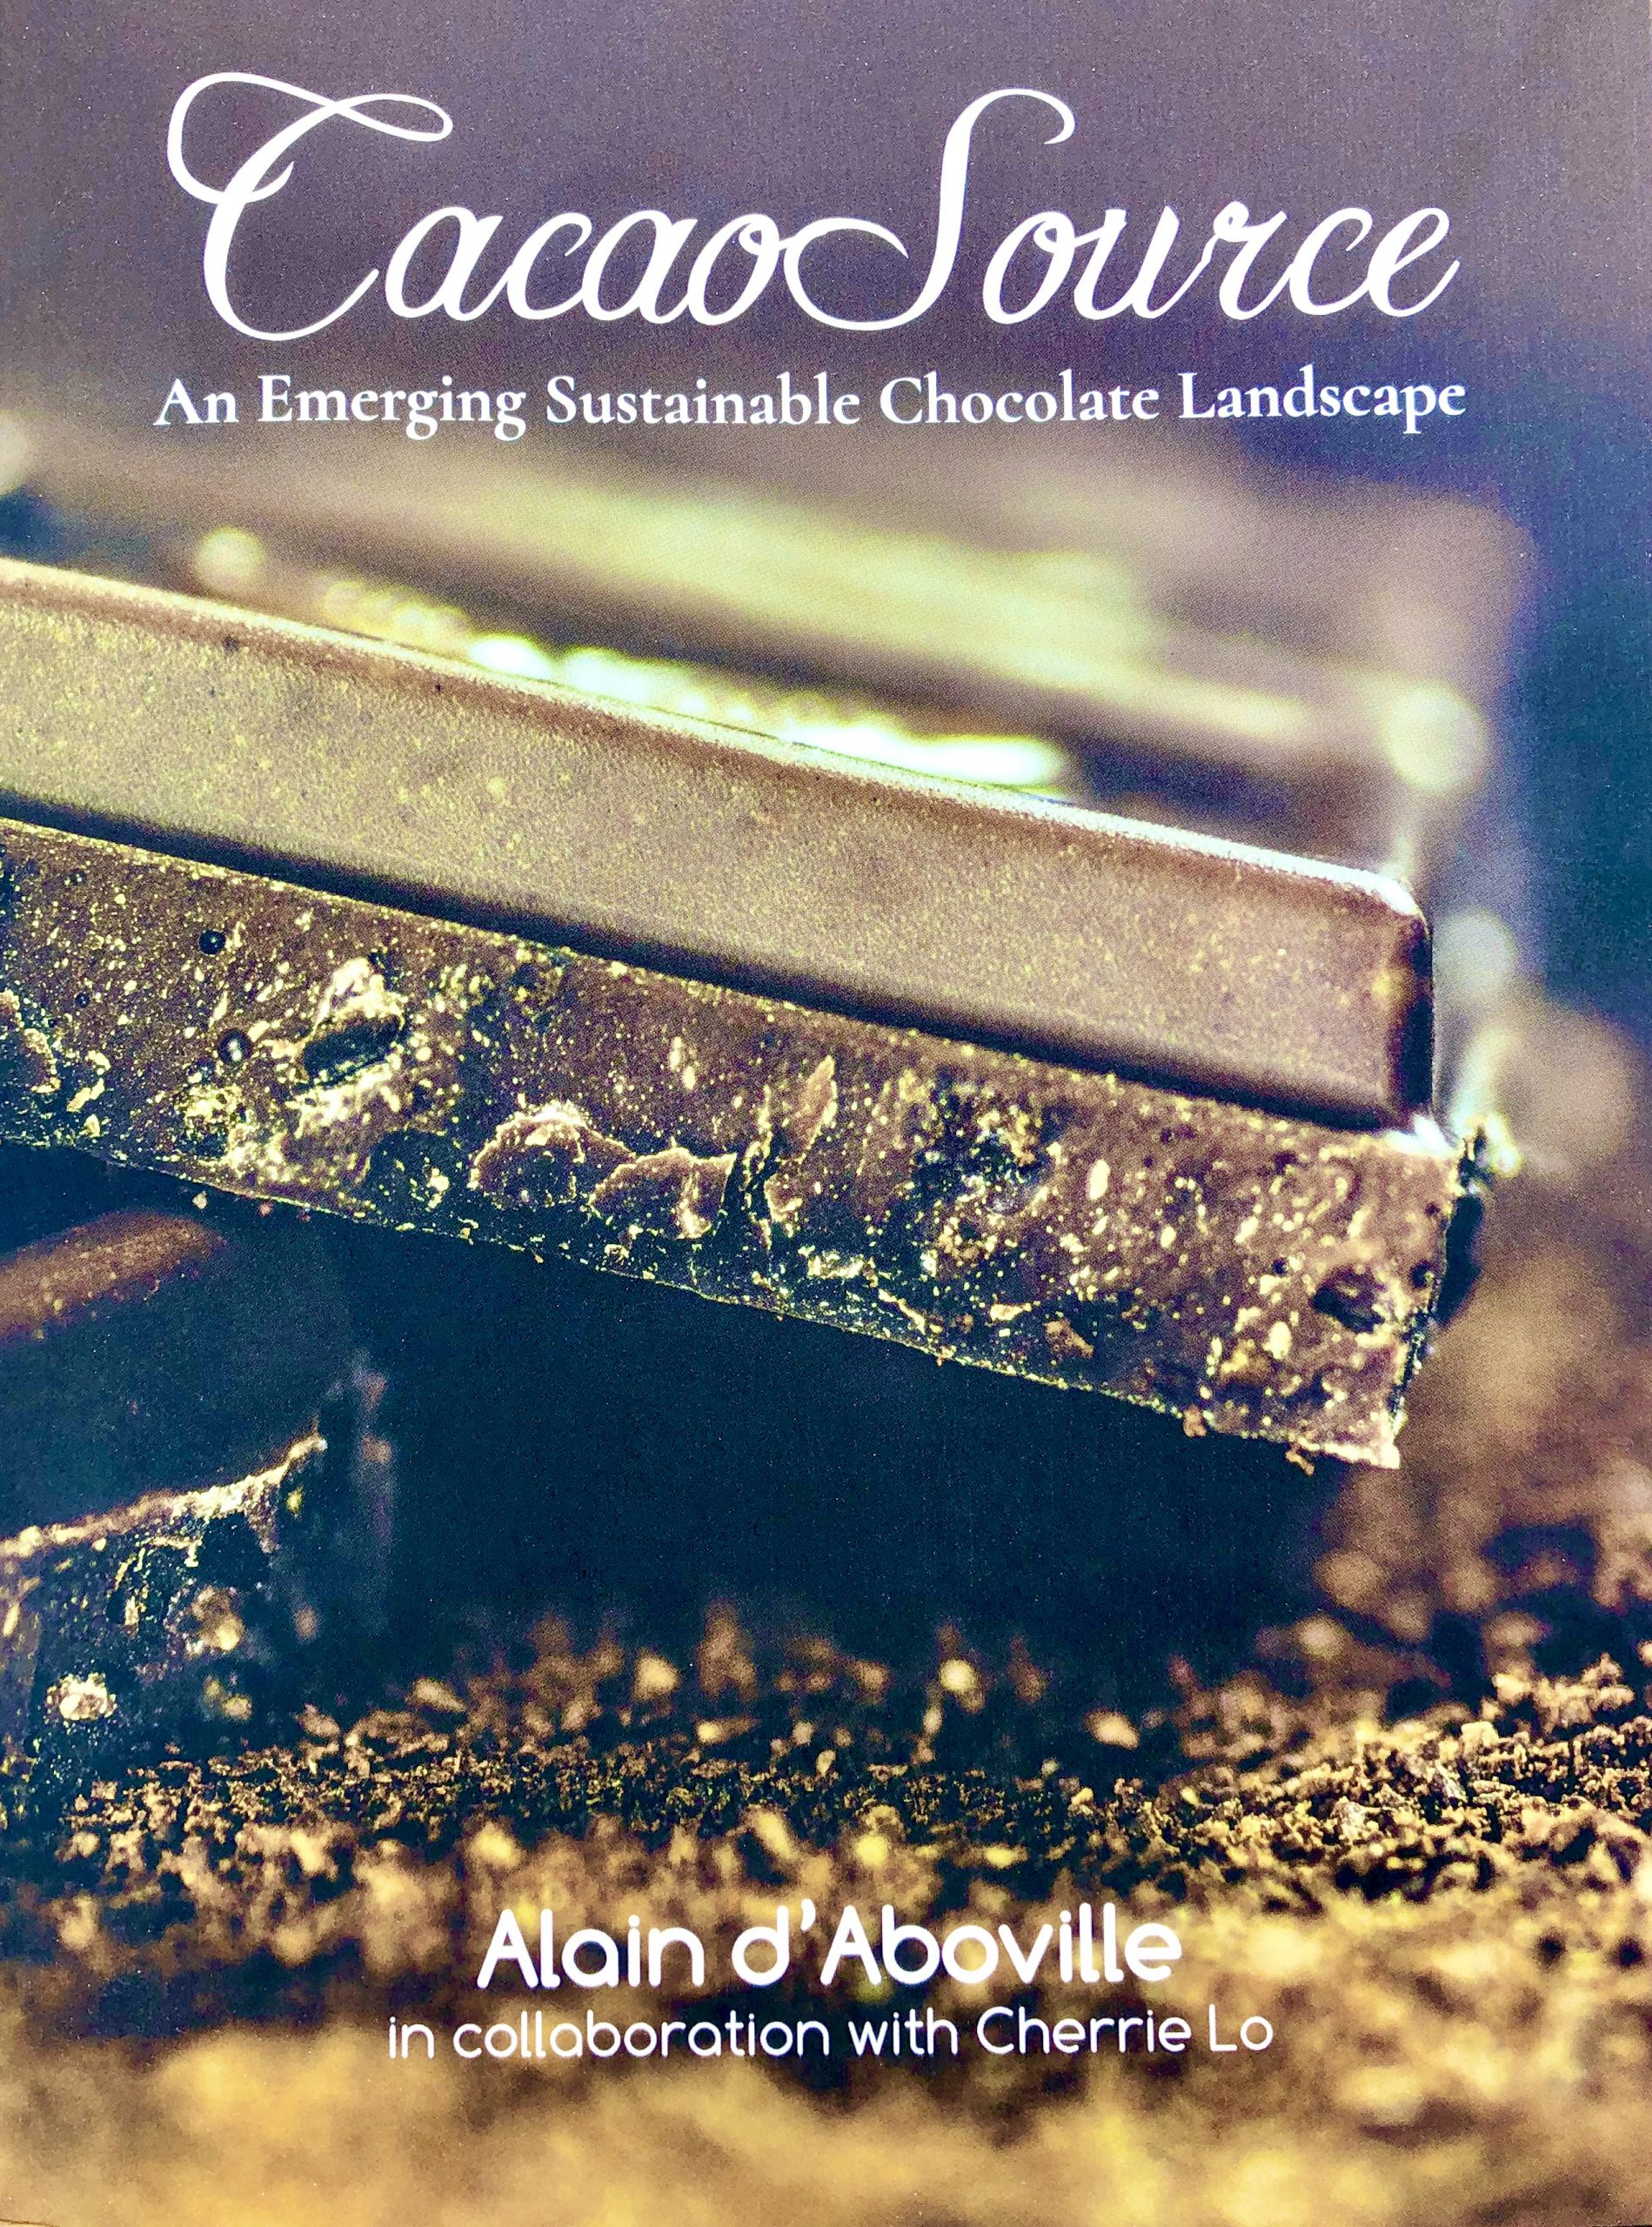 CacaoSource book cover